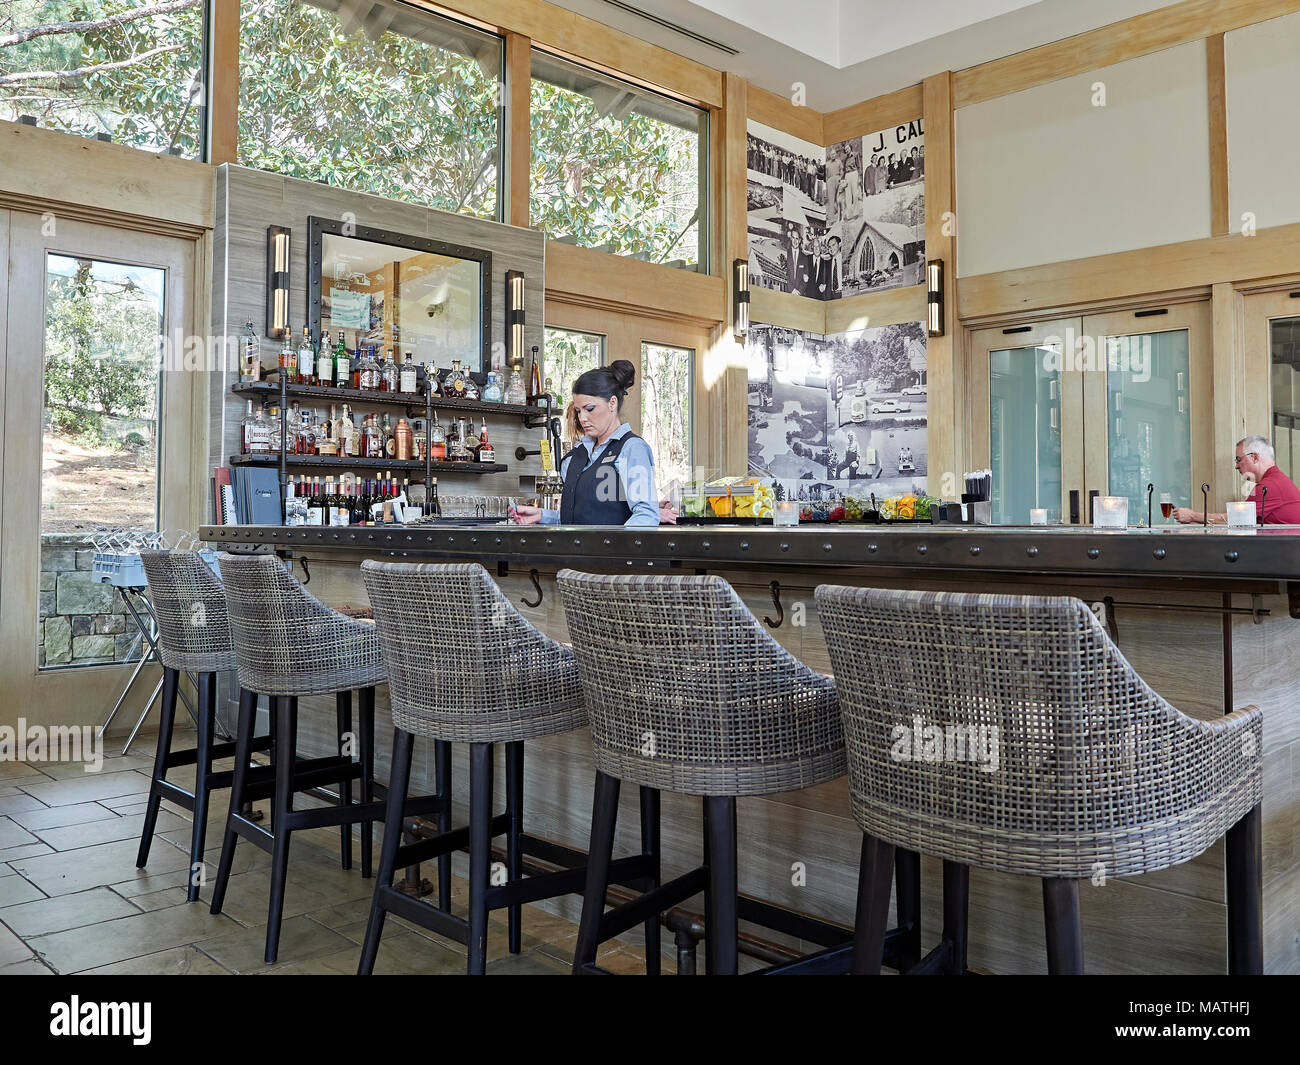 Empty bar stools immagini & empty bar stools fotos stock alamy